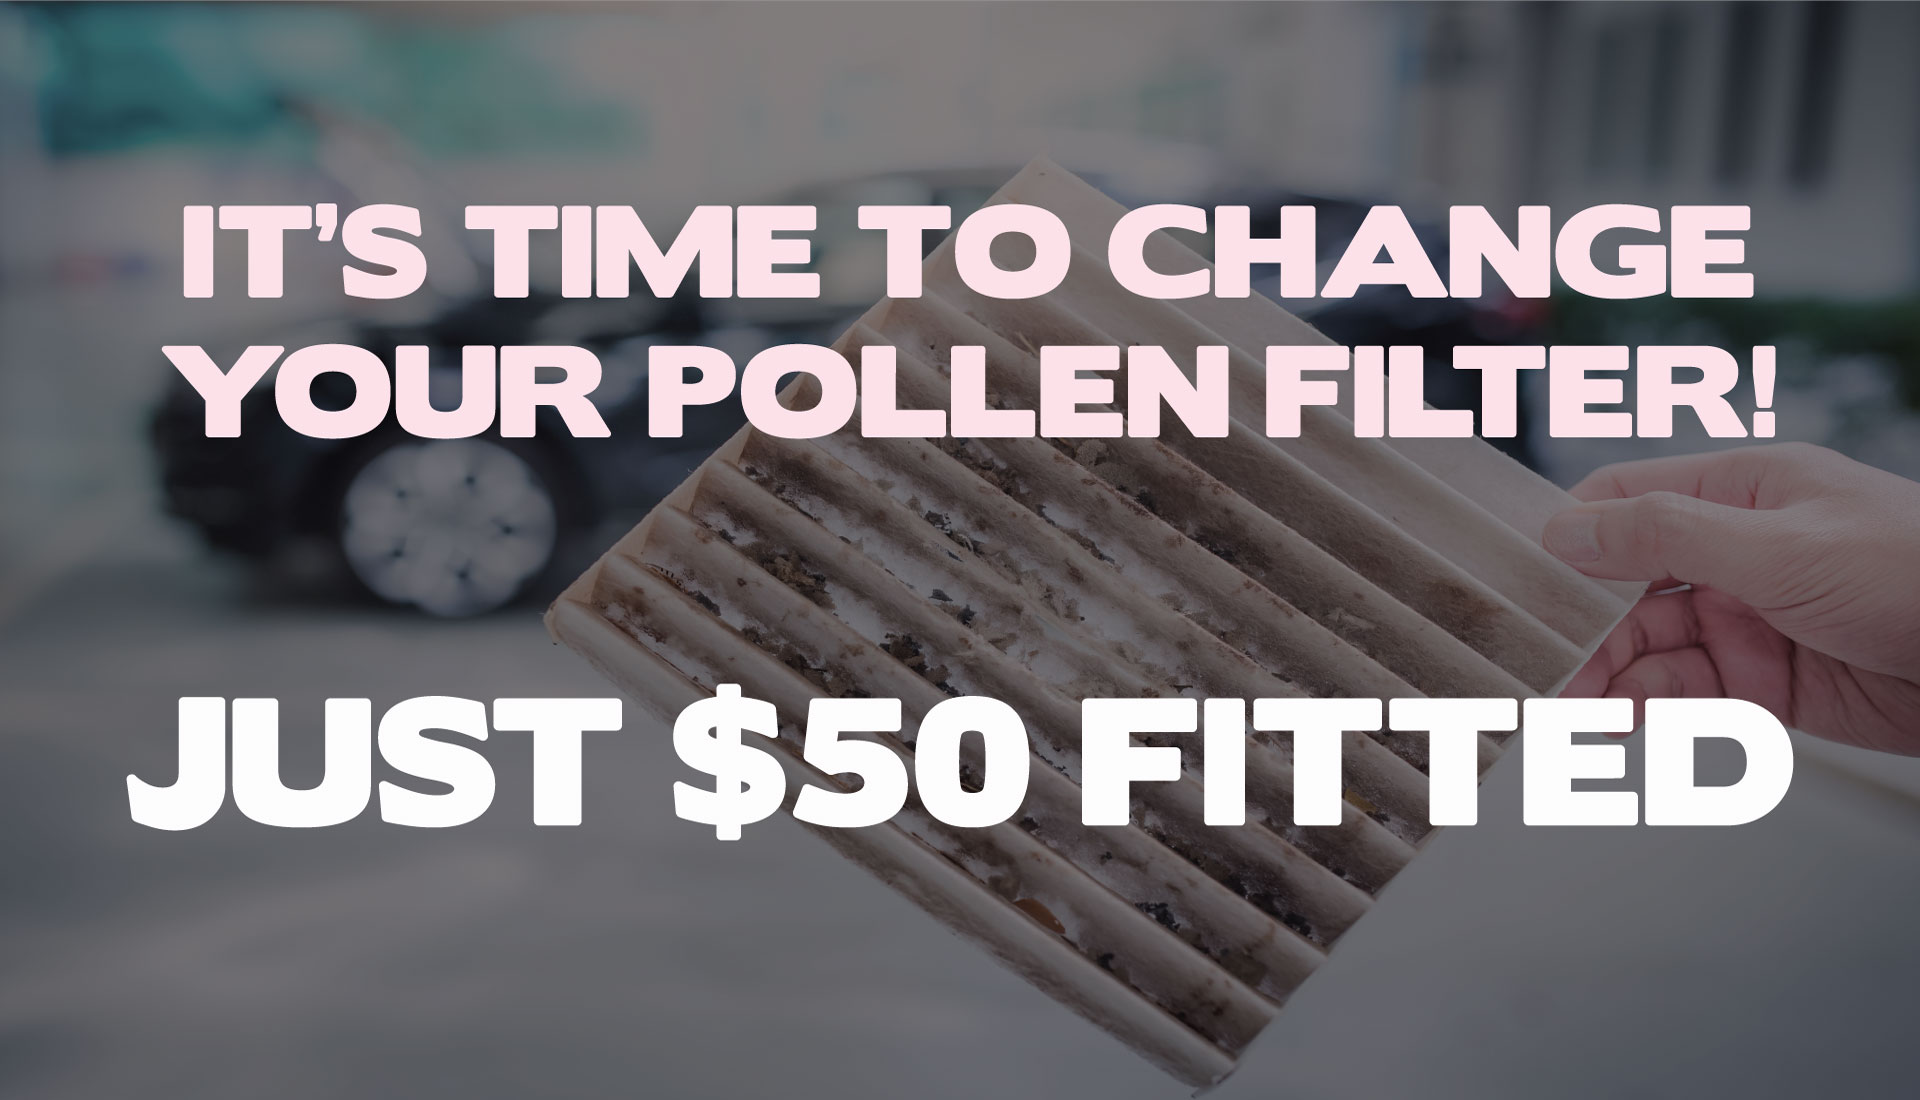 IS IT TIME TO CHANGE YOUR POLLEN FILTER